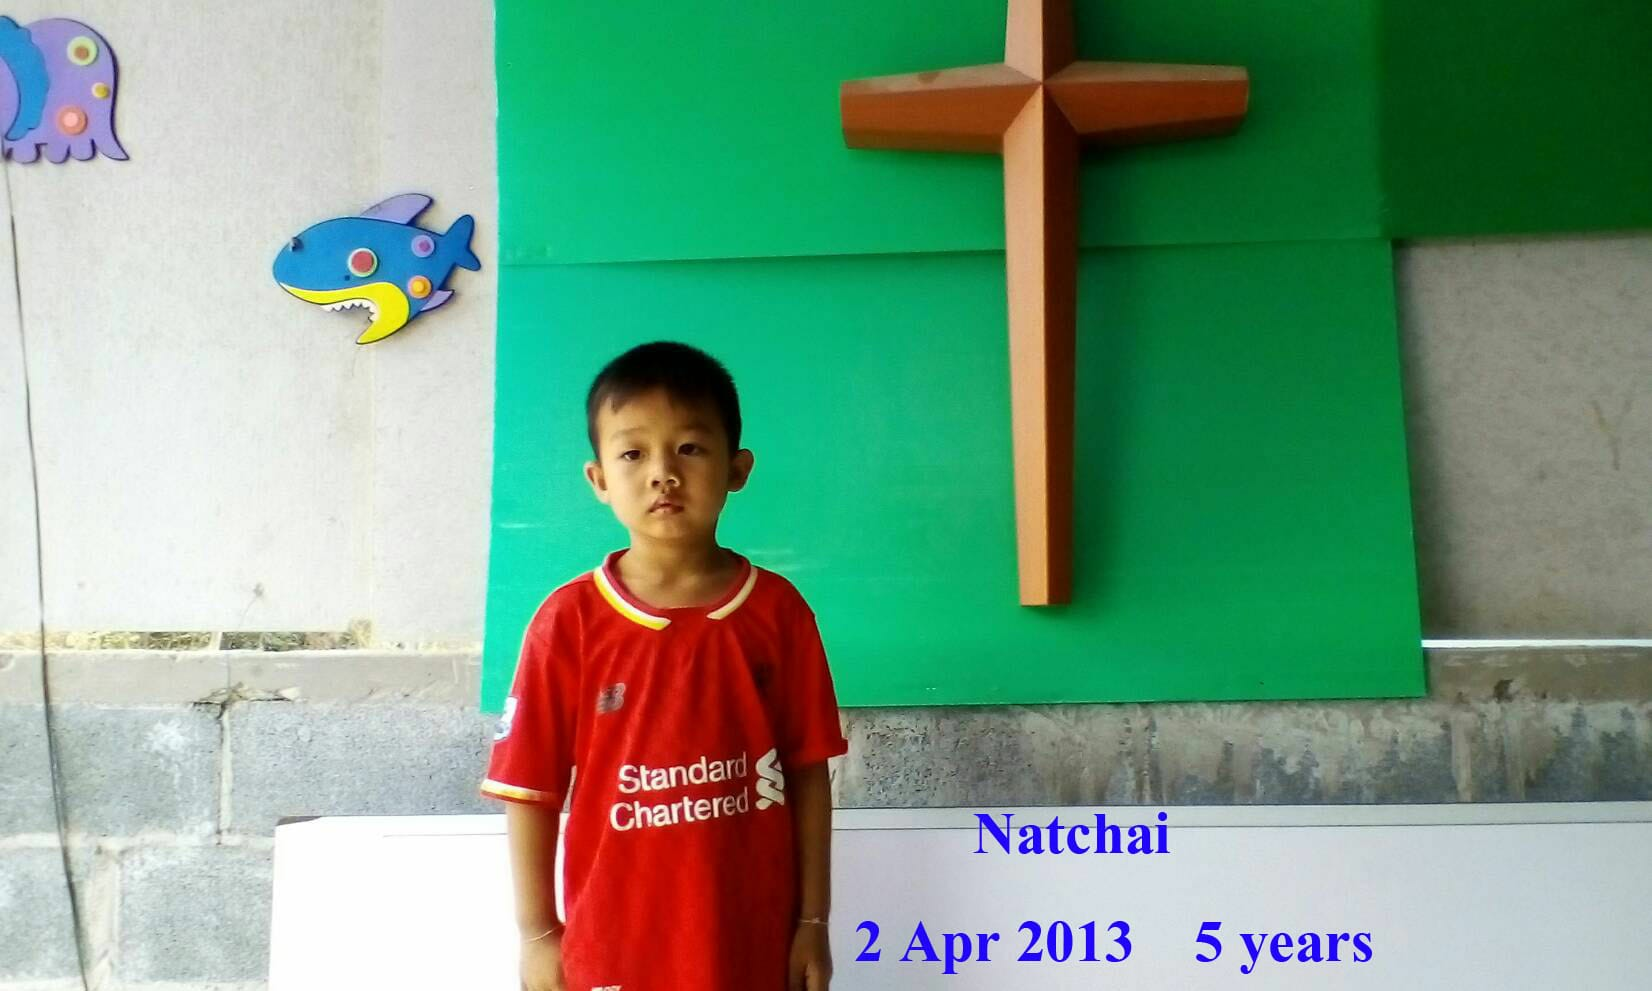 Natchai (5 years old, boy)